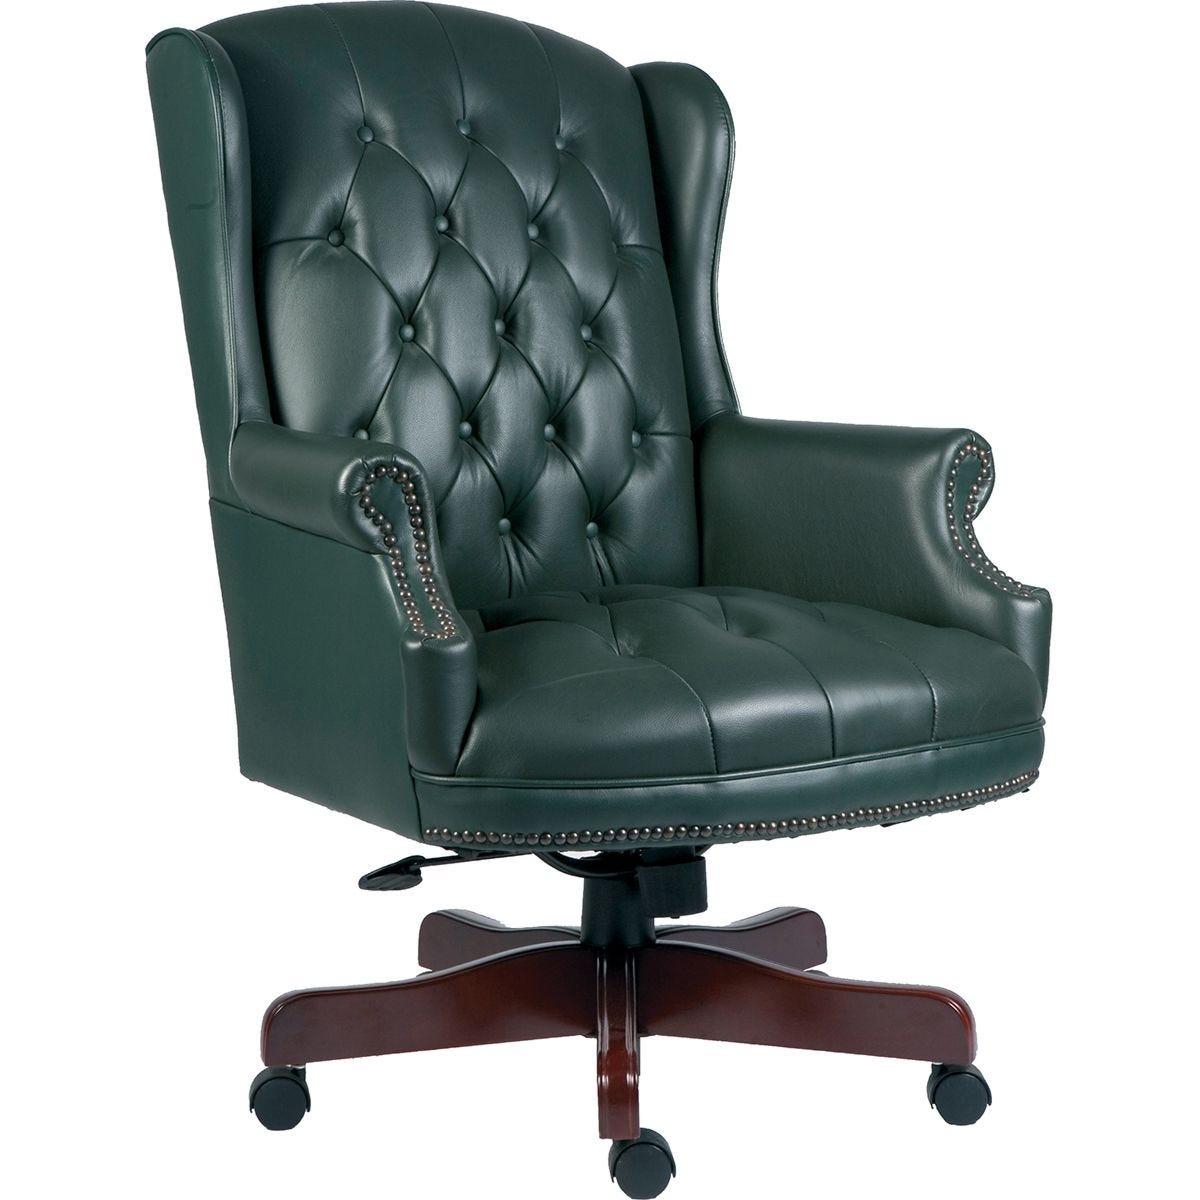 Teknik Chairman Leather Faced Swivel Chair - Green